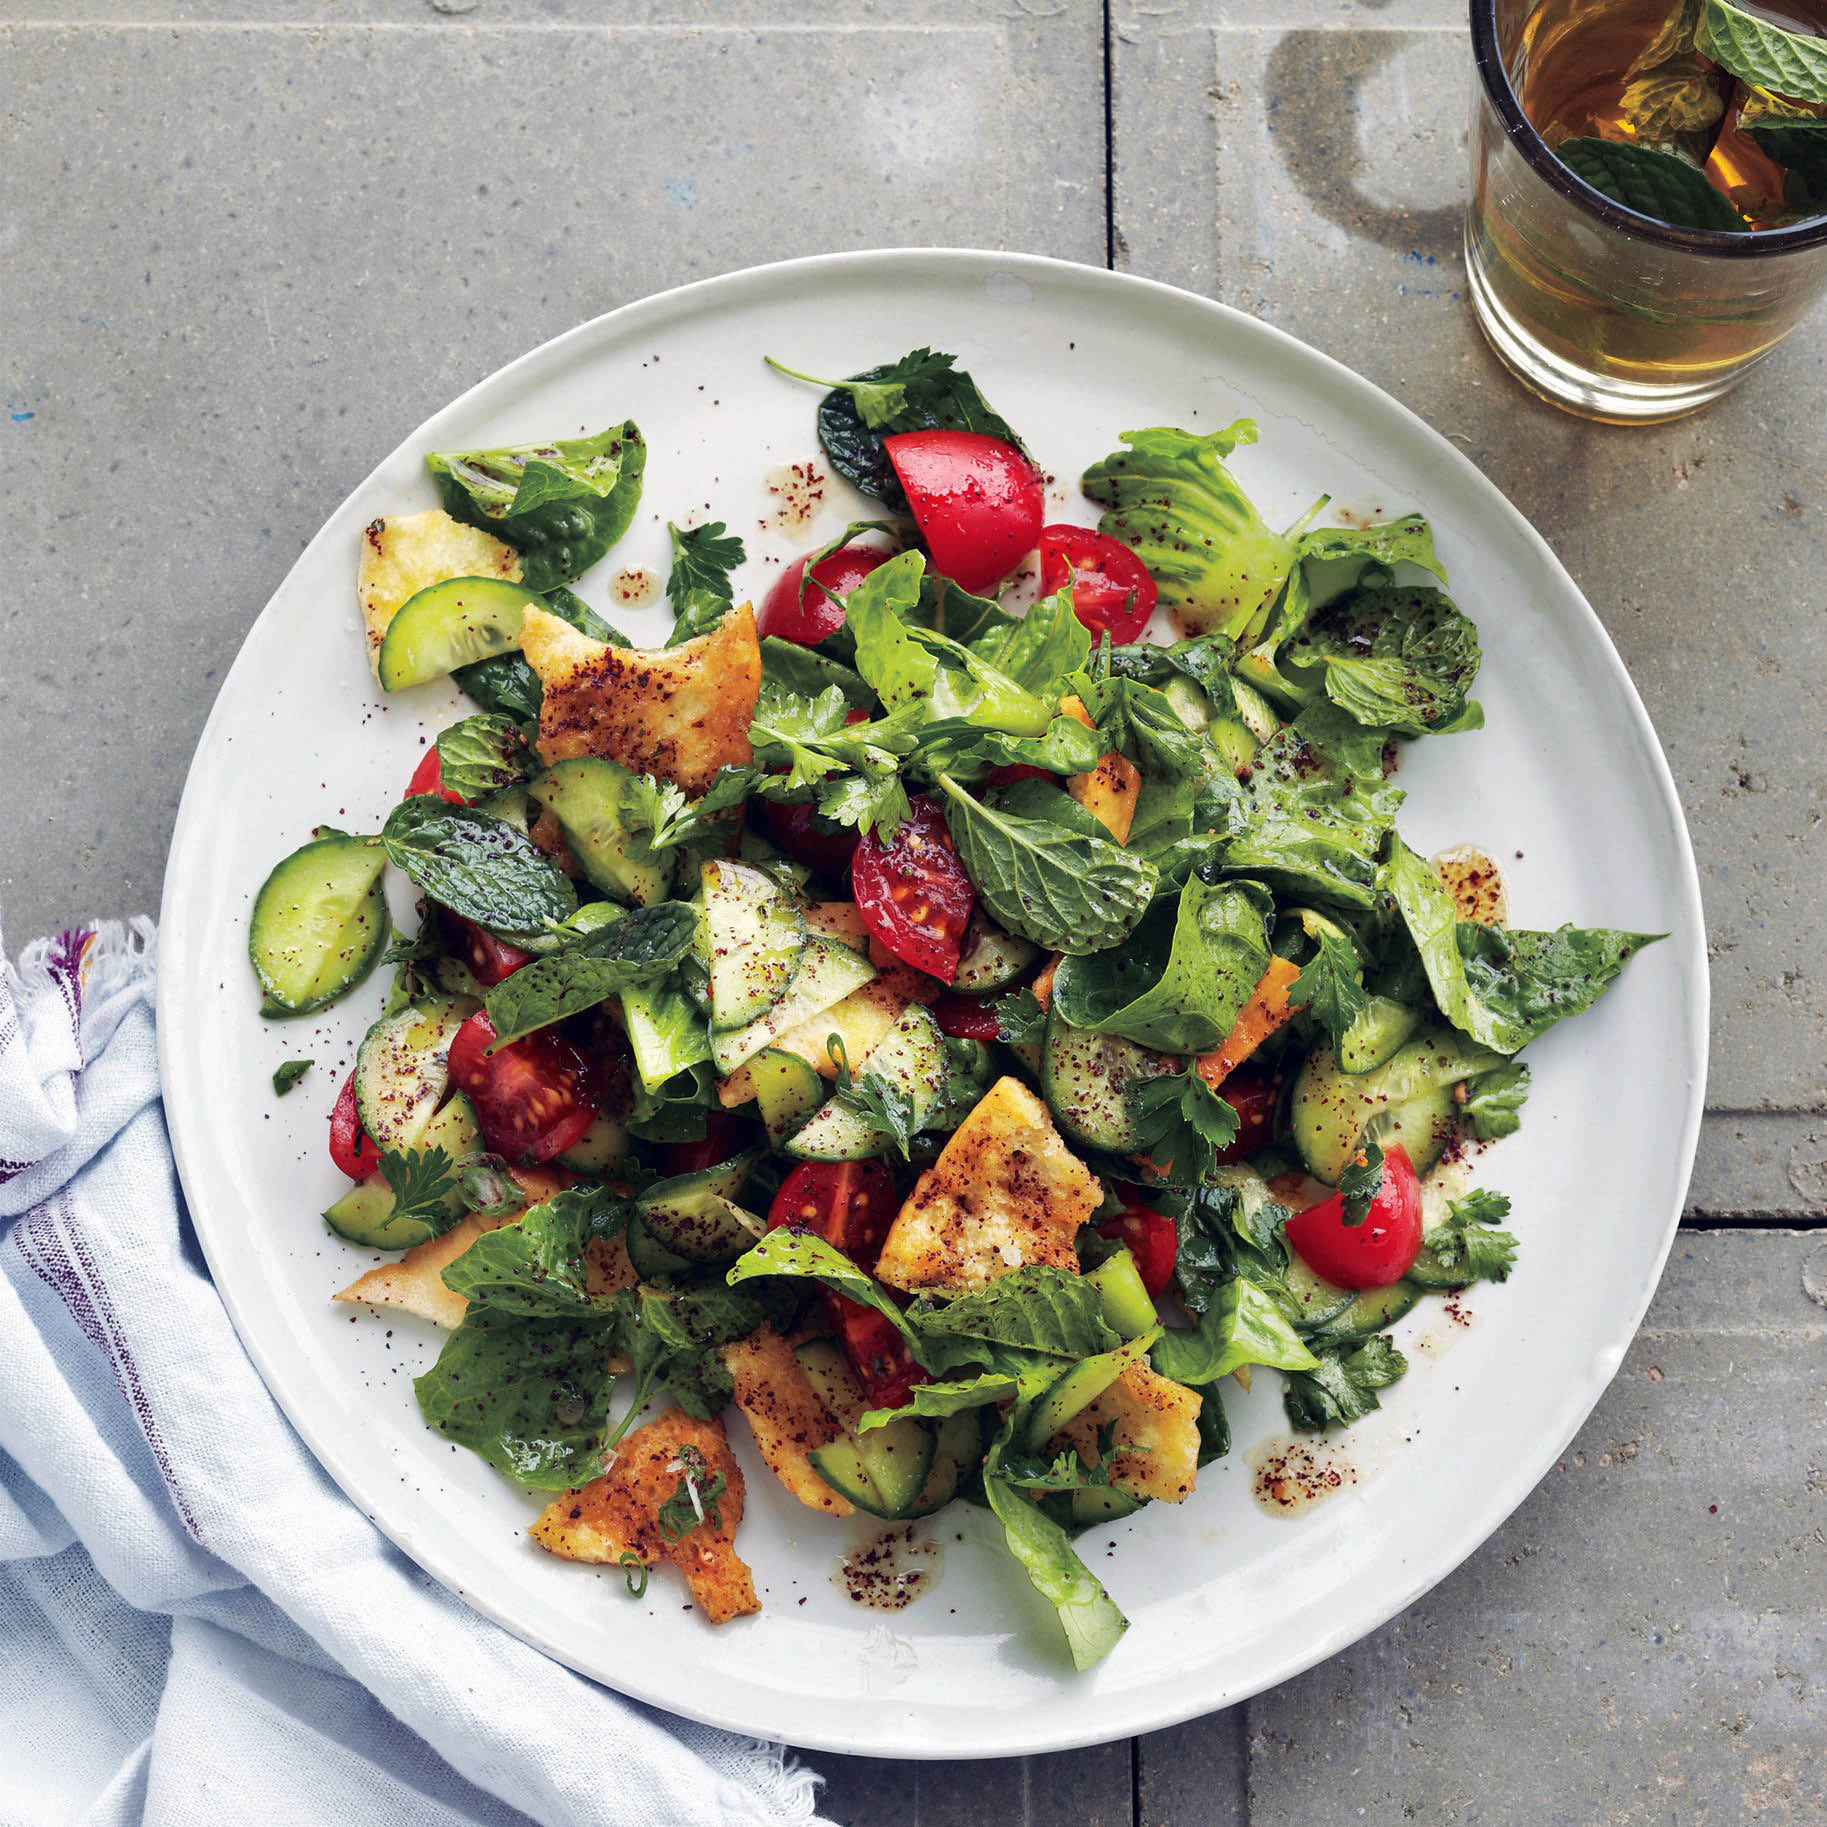 Fatoush Salad - Fresh veggies, herbs and spices with toasted pita bread